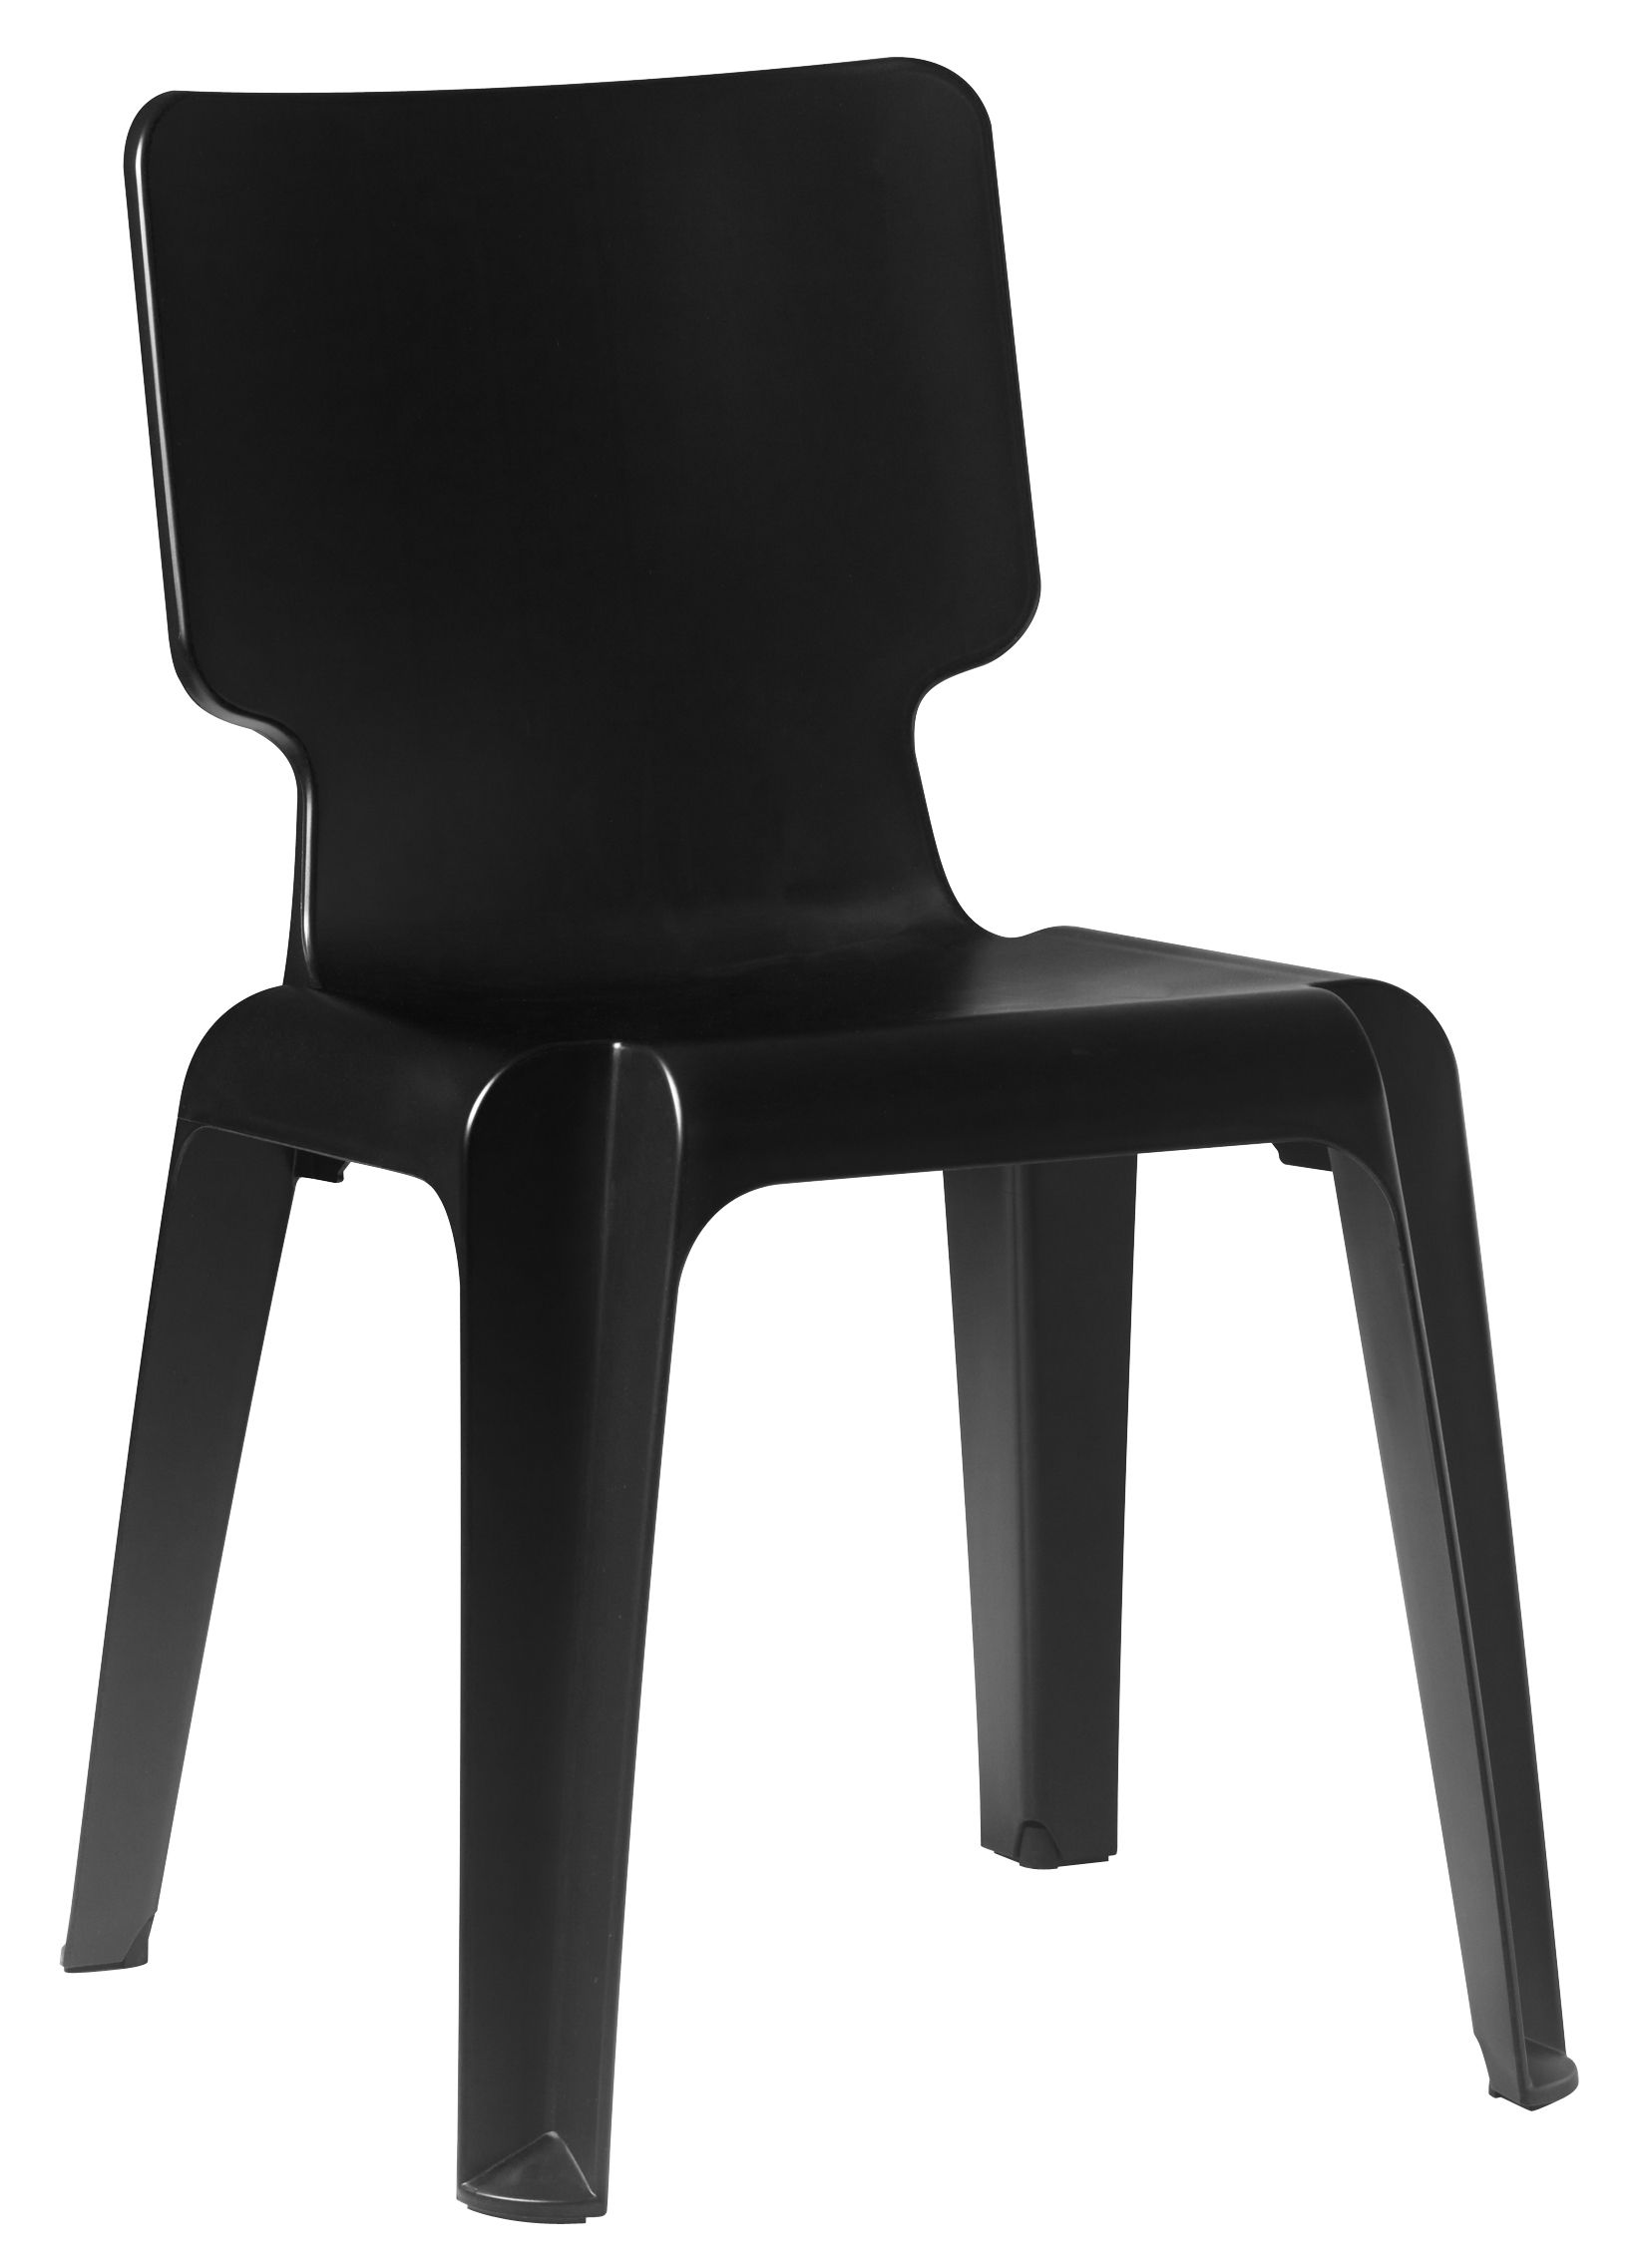 Furniture - Chairs - Wait Chair by Authentics - Black - Polypropylene